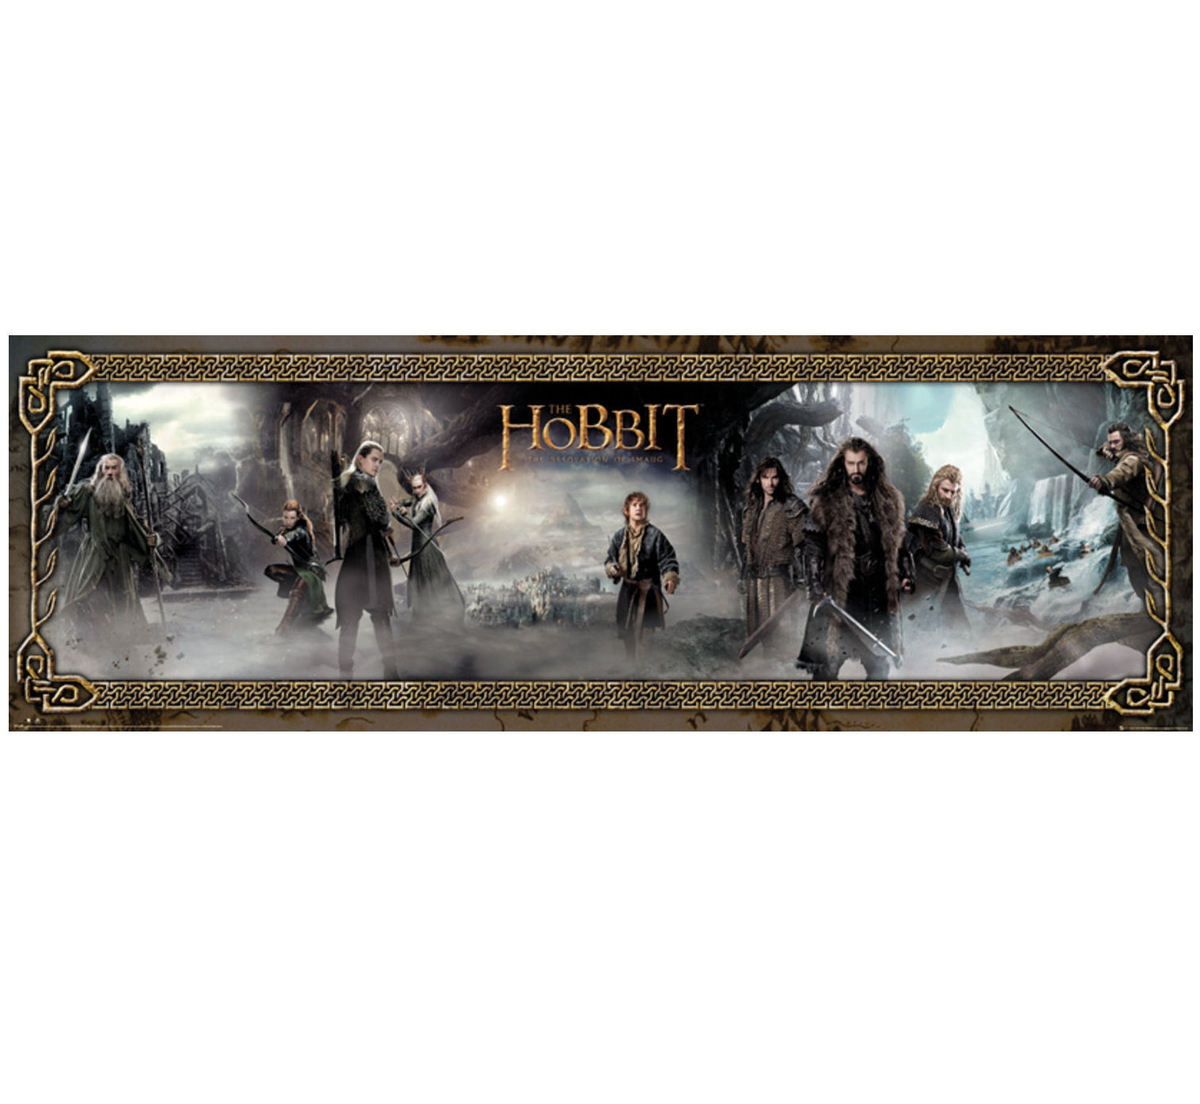 plakát The Hobbit - Desolation of Smaug Mist - GB posters - DP0458